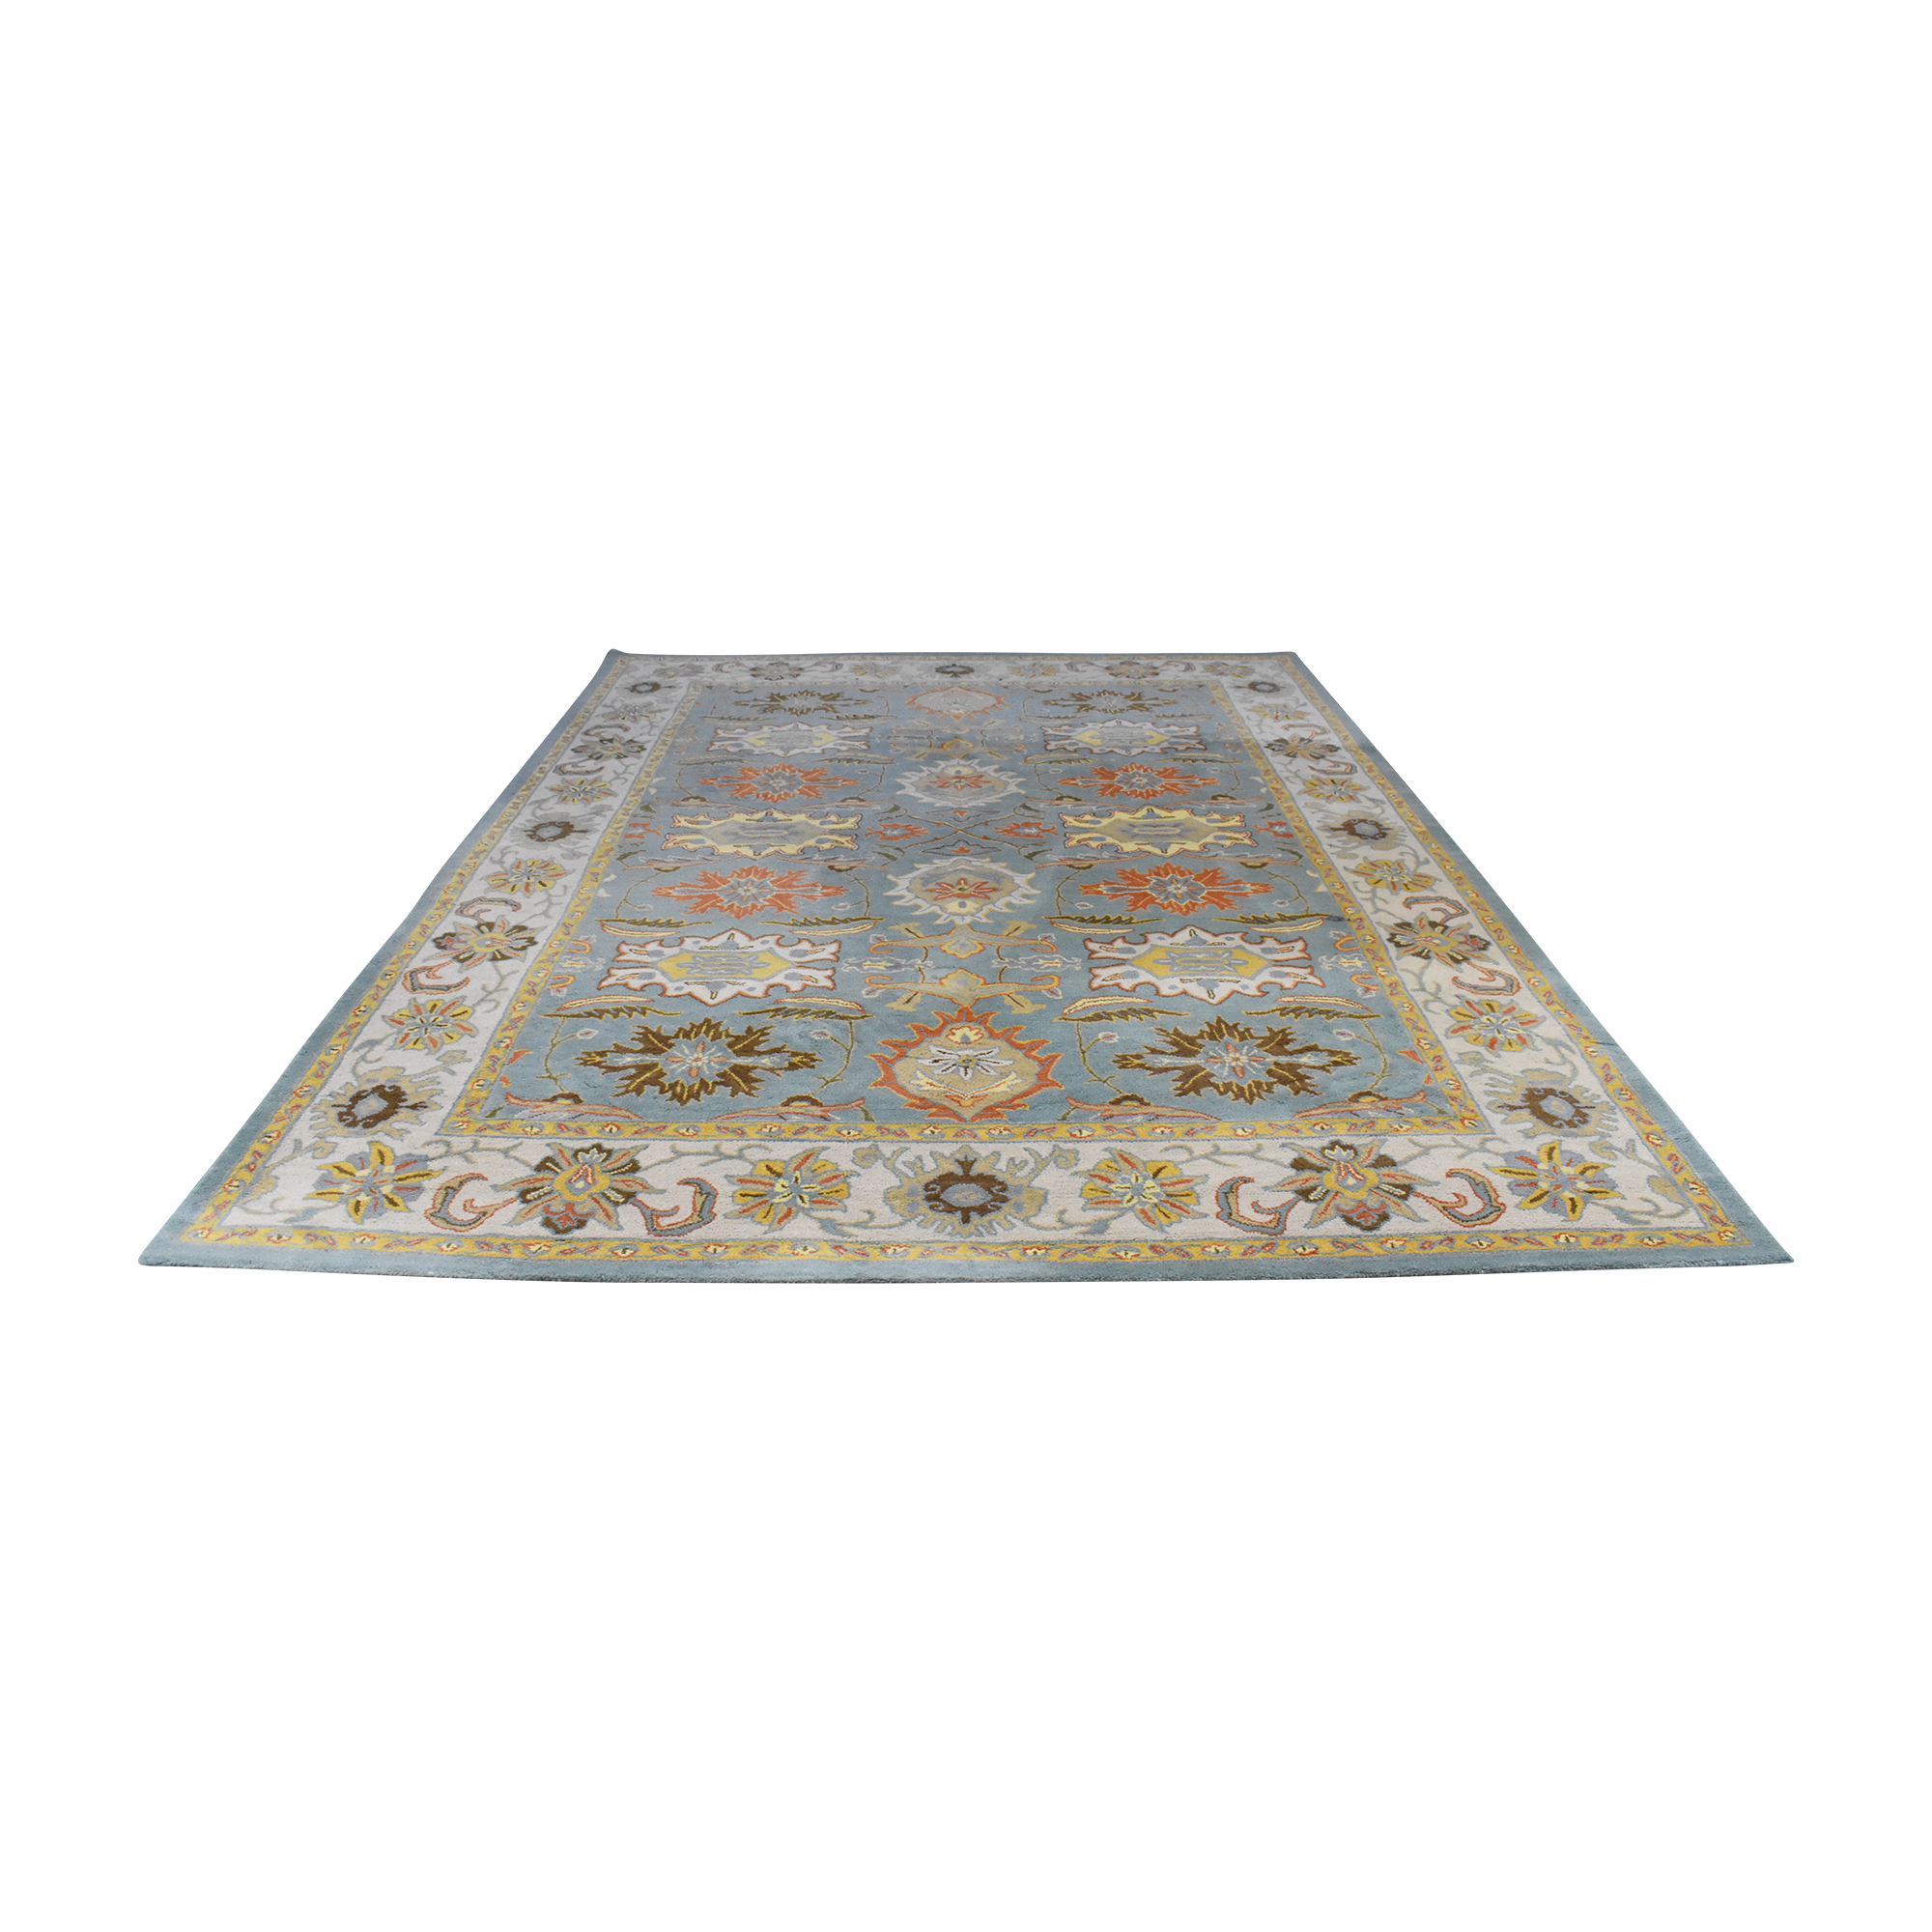 buy Safavieh Heritage Collection Area Rug Safavieh Decor